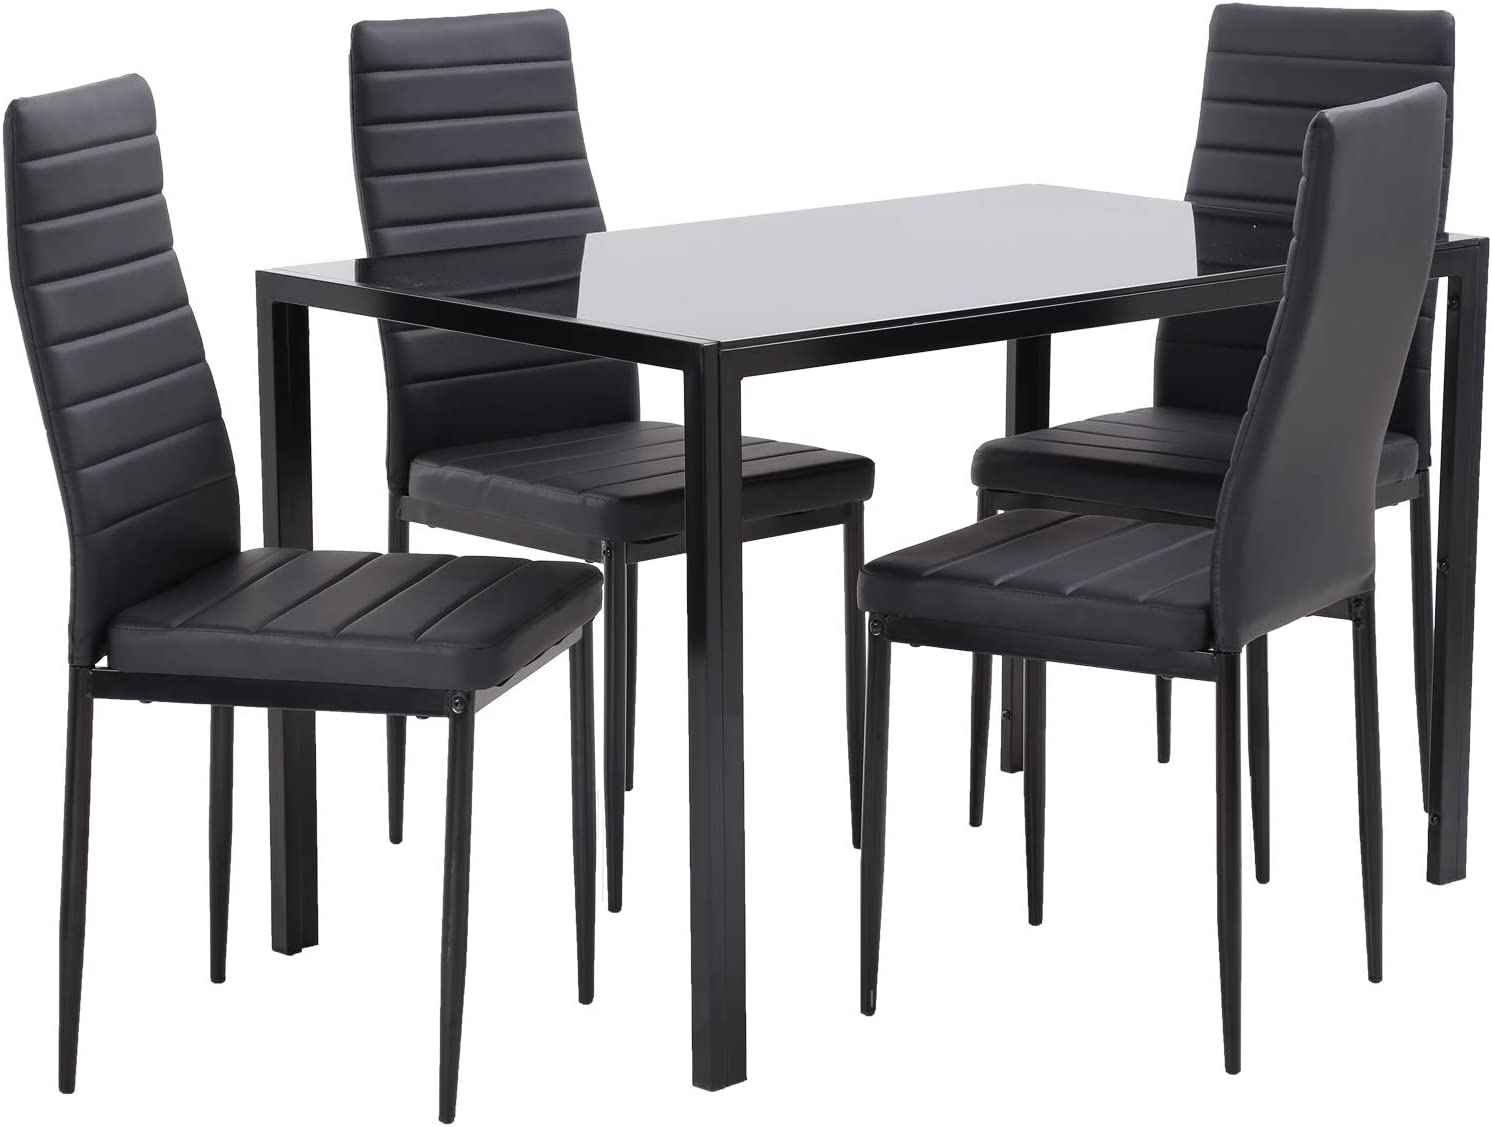 Amazon Com Dining Table Set Dining Room Table Set Dinner Table Dinette Sets For Small Spaces Dinning Table With Chairs Set Of 4 Kitchen Dining Table Set For Breakroom Home Furniture Rectangular